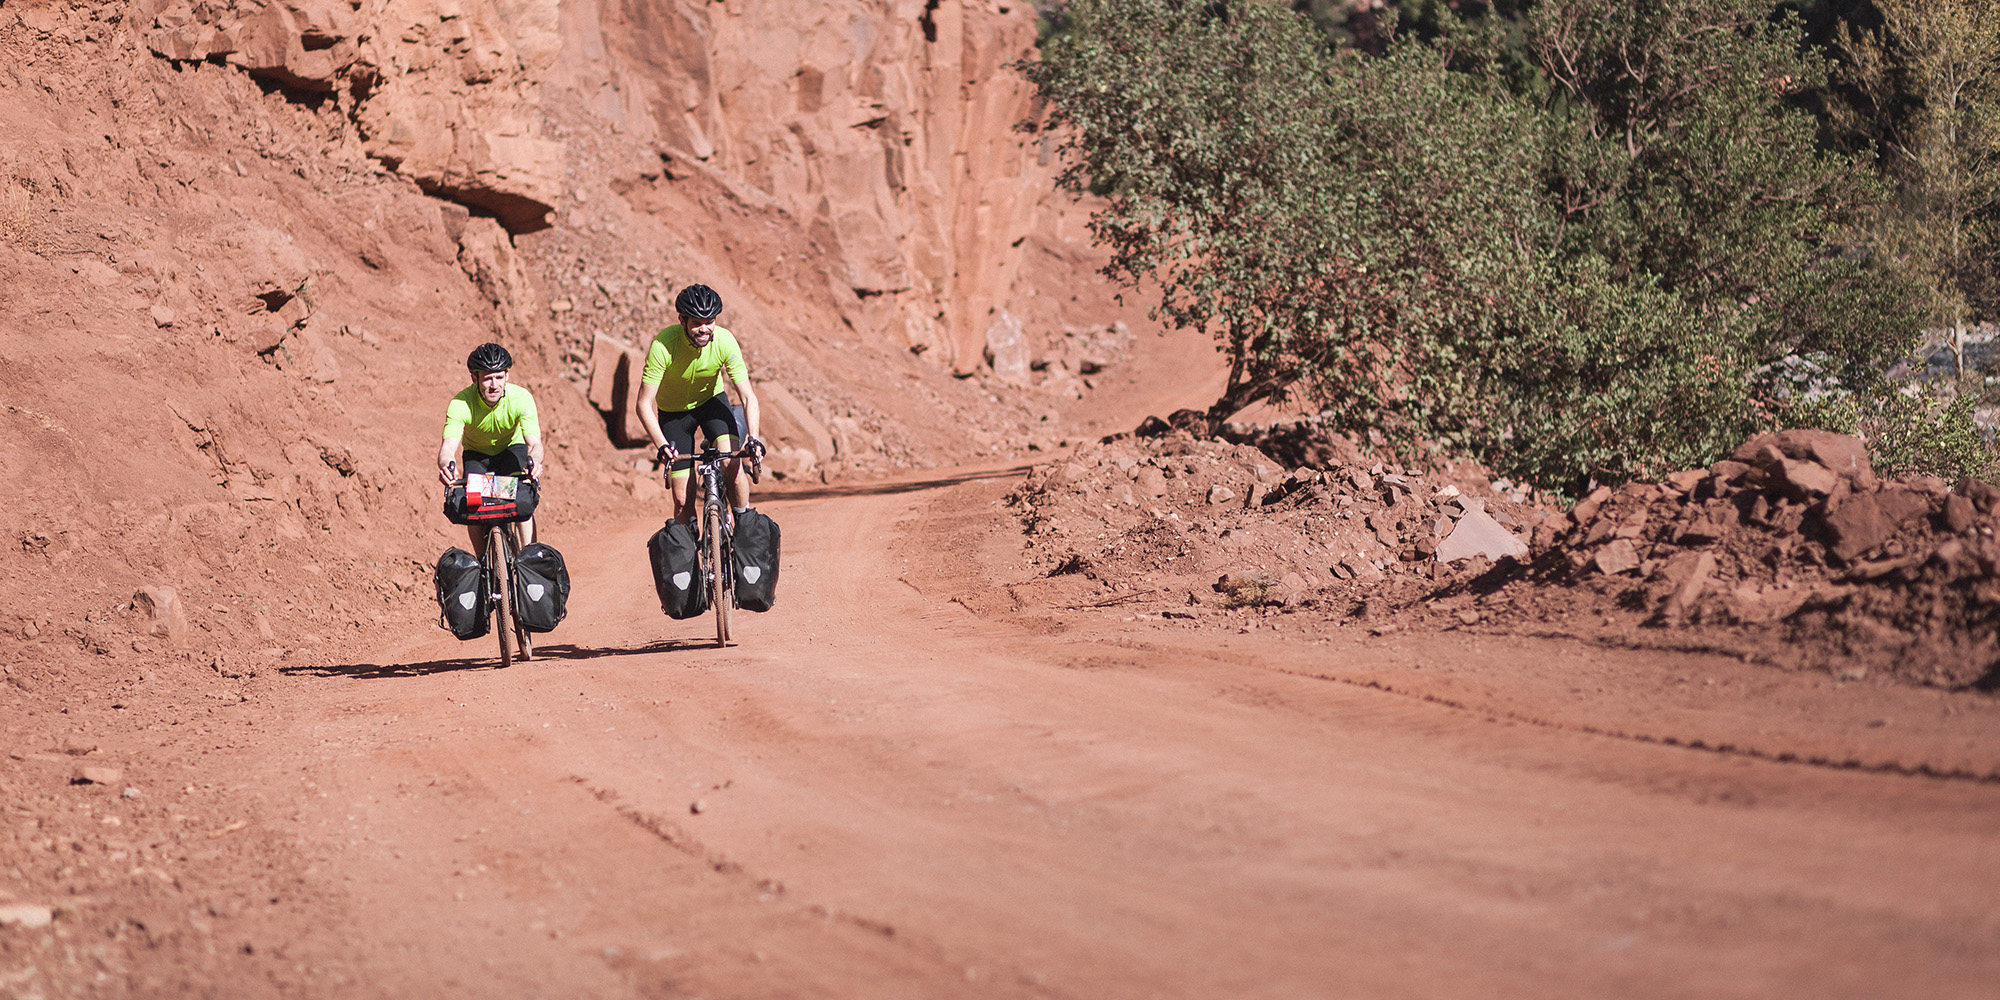 8bar-bikes-adventures-morocco-gravel-20151210-0026-banner